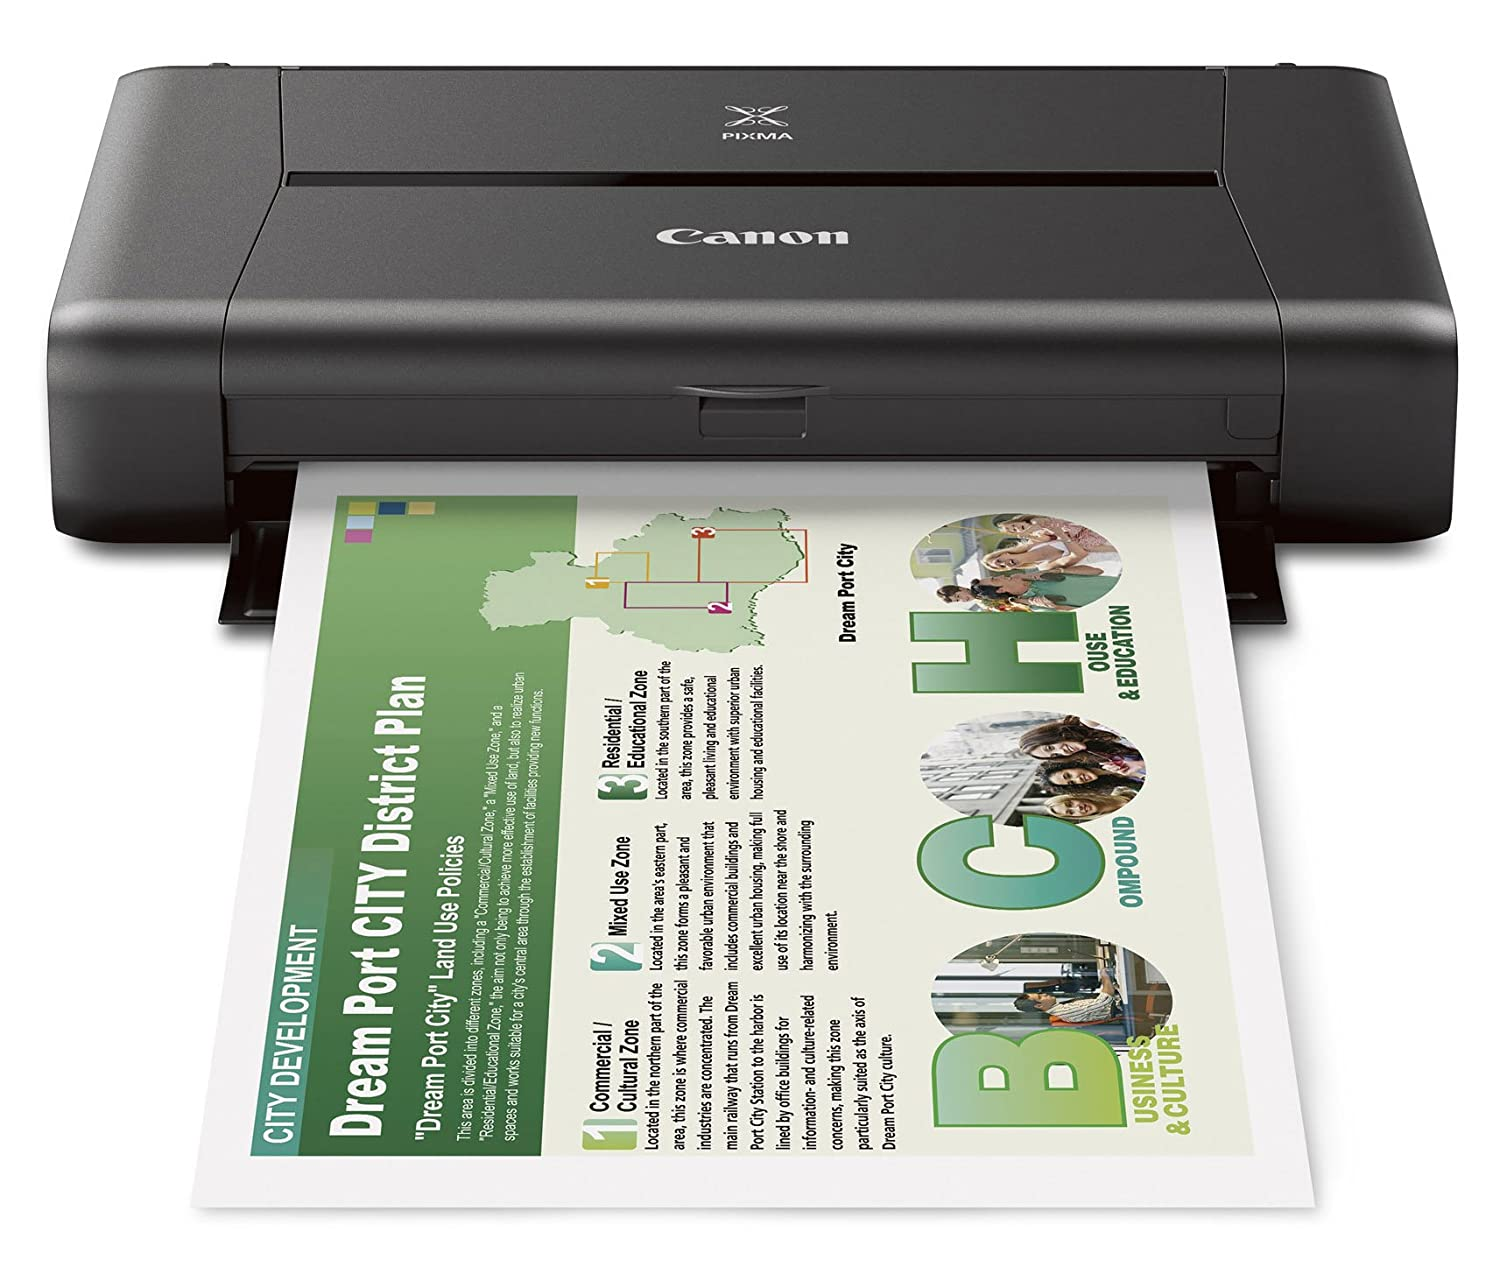 Wireless Mobile Printer